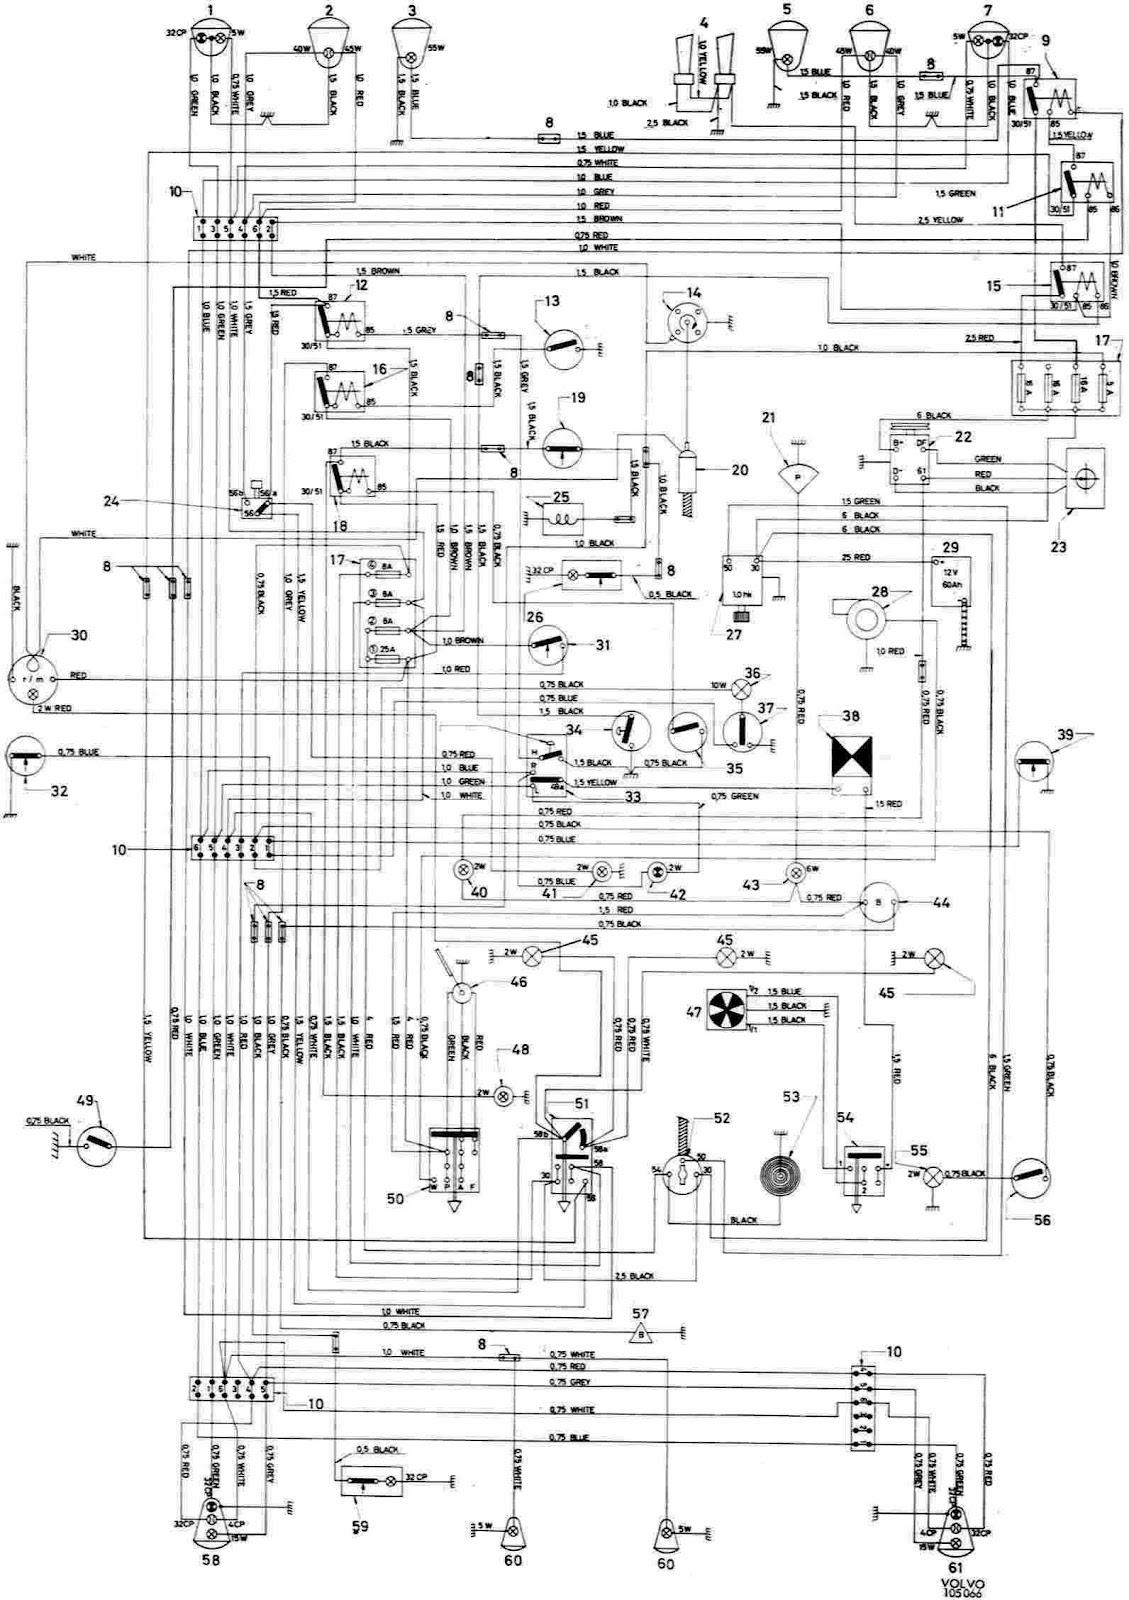 Volvo+123+GT+Complete+Wiring+Diagram 2005 volvo s40 wiring diagram volvo s40 steering diagram \u2022 wiring volvo xc90 stereo wiring diagram at nearapp.co